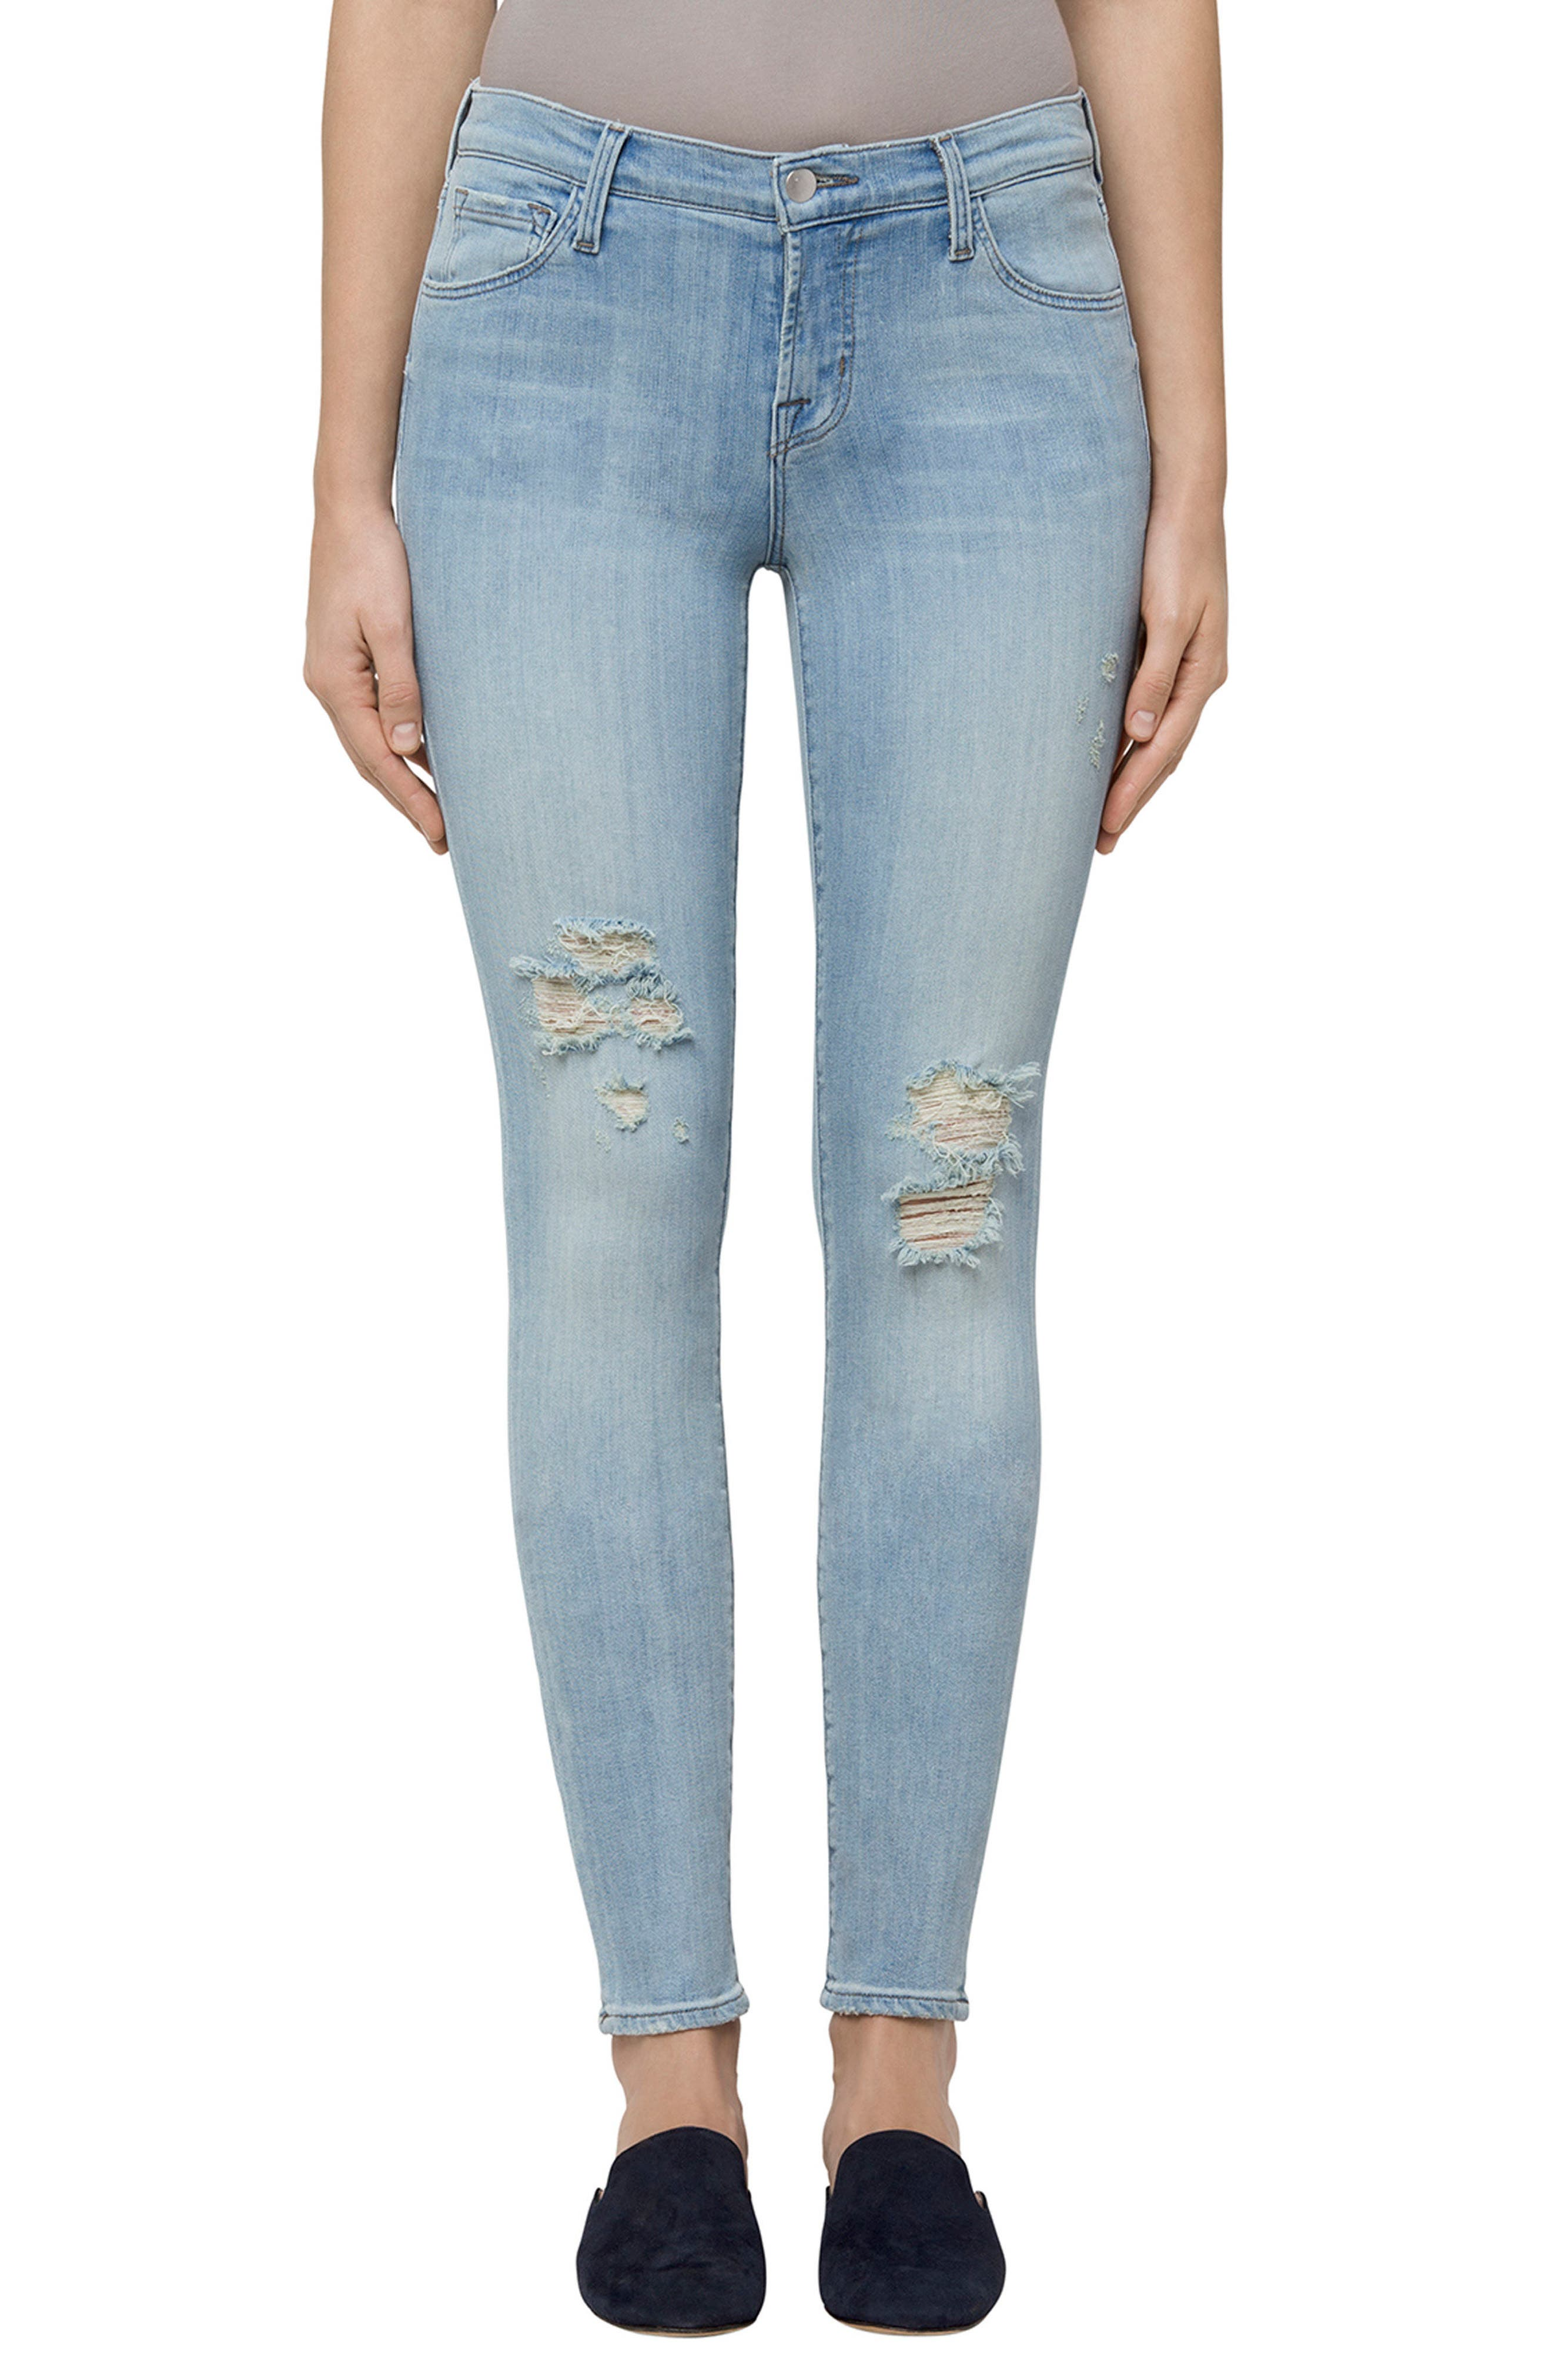 811 Skinny Jeans,                             Main thumbnail 1, color,                             Refresh Destruct